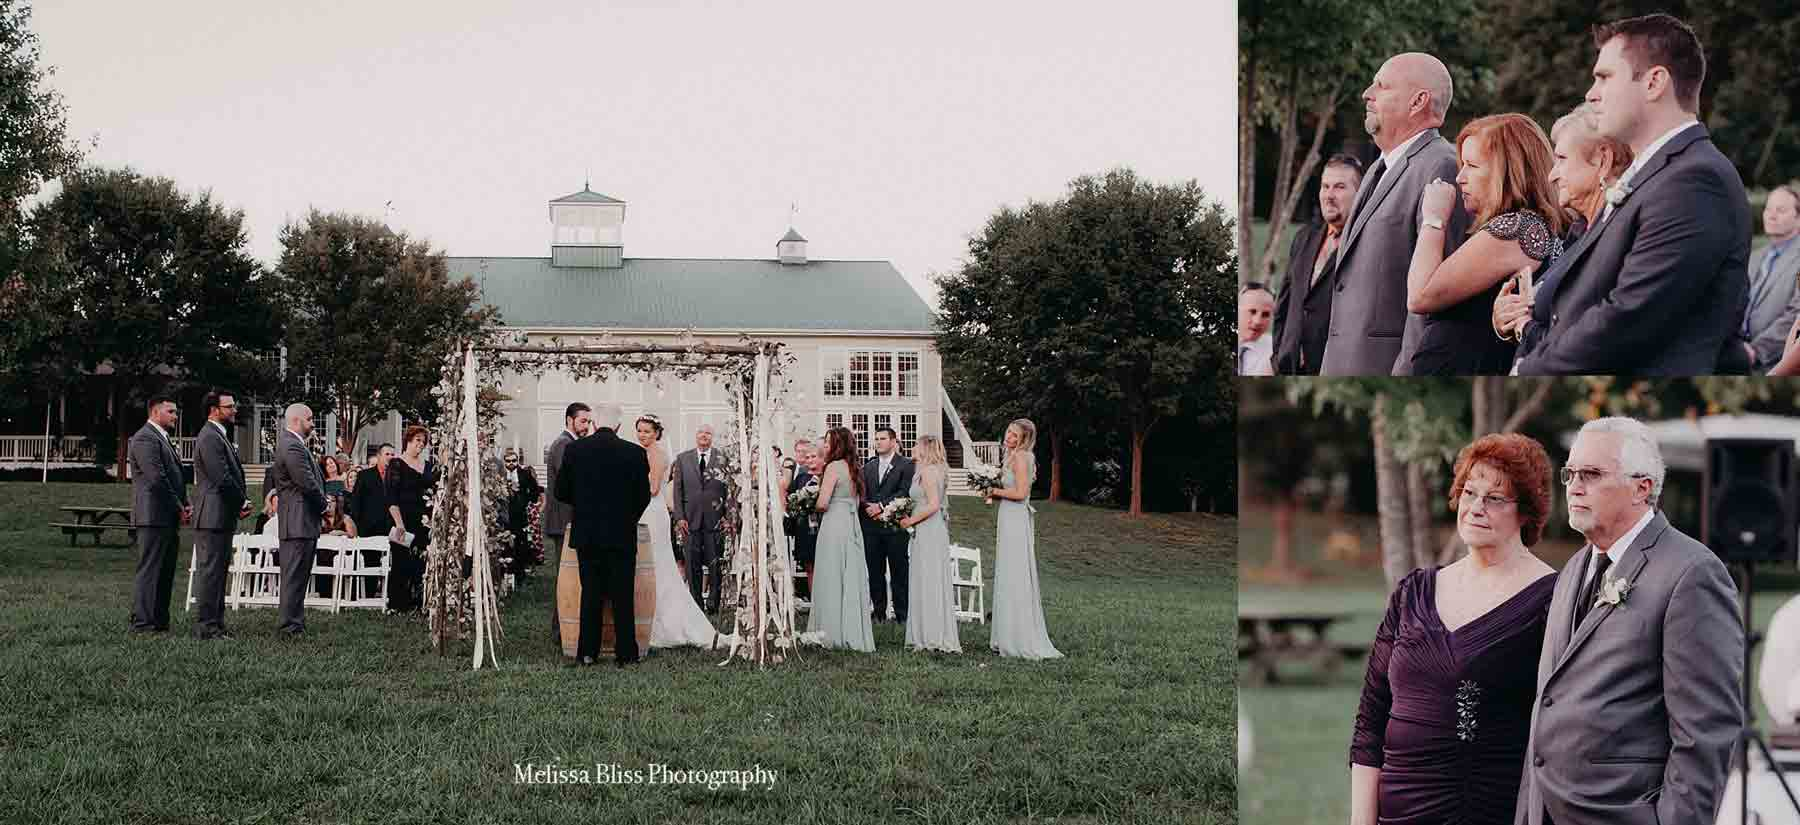 Veritas-winery-wedding-melissa-bliss-photography-VA-mountain-wedding-photographer-charlottesville-lynchburg-richmond-norfolk-wedding-photographer.jpg